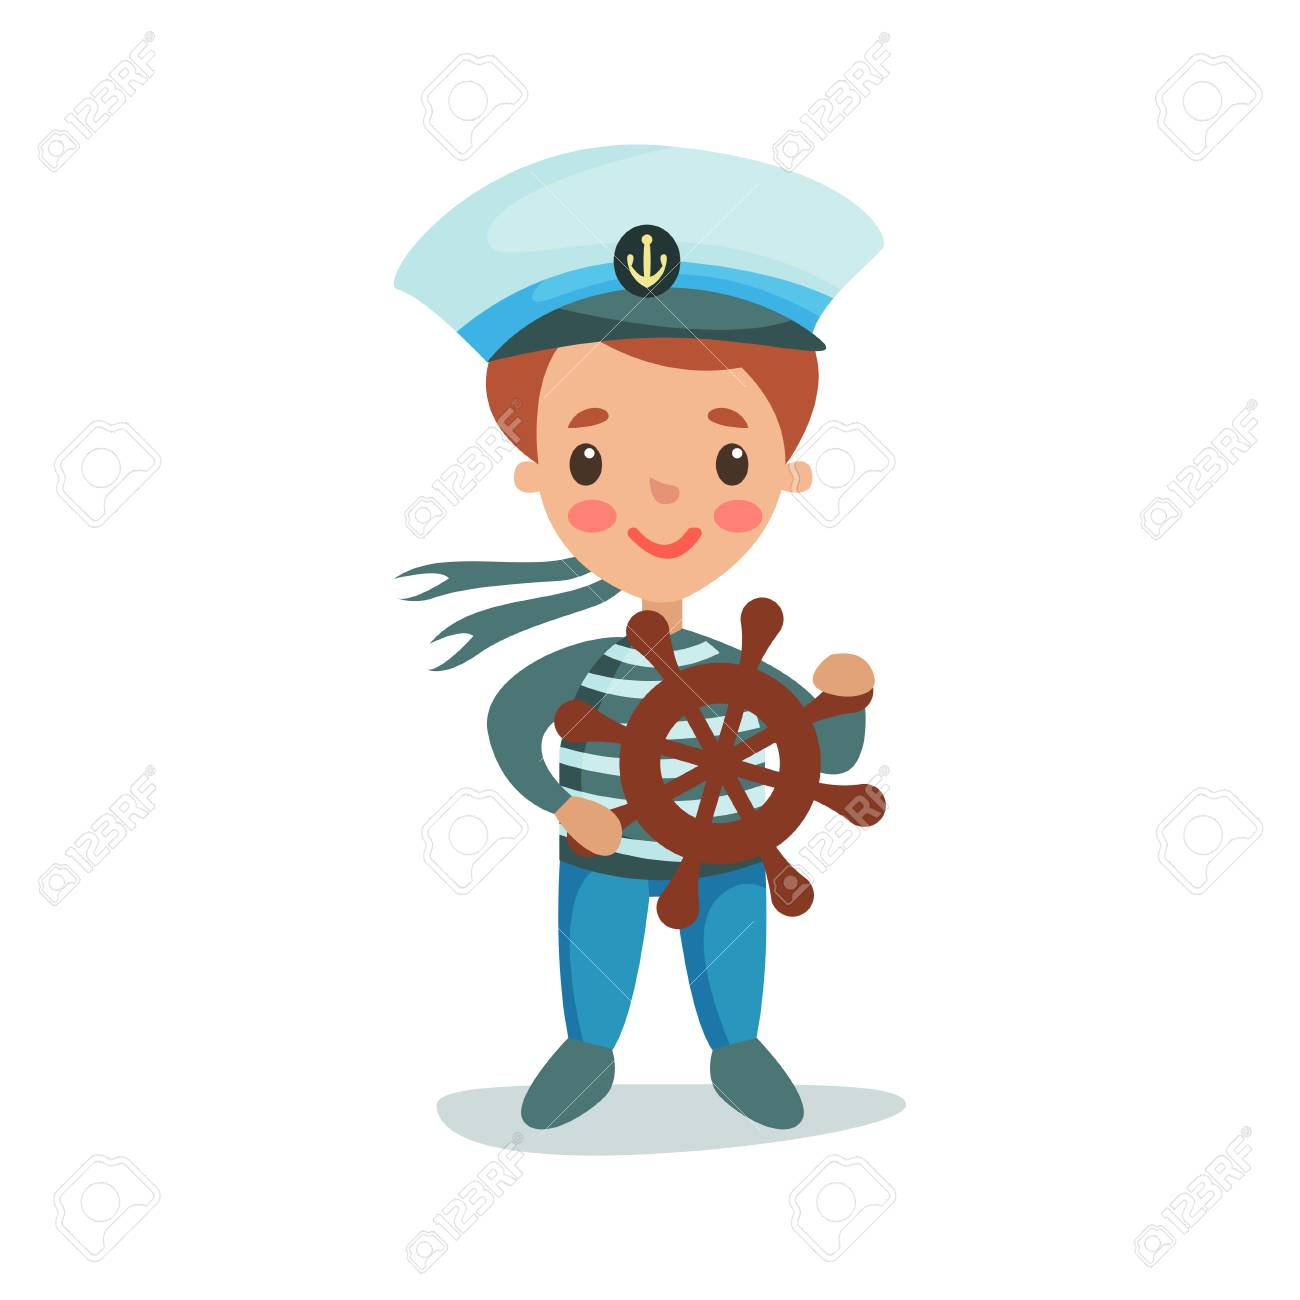 Cute little boy in sailors costume playing with wooden wheel kid dreaming of becoming a  sc 1 st  123RF.com & Cute Little Boy In Sailors Costume Playing With Wooden Wheel ...